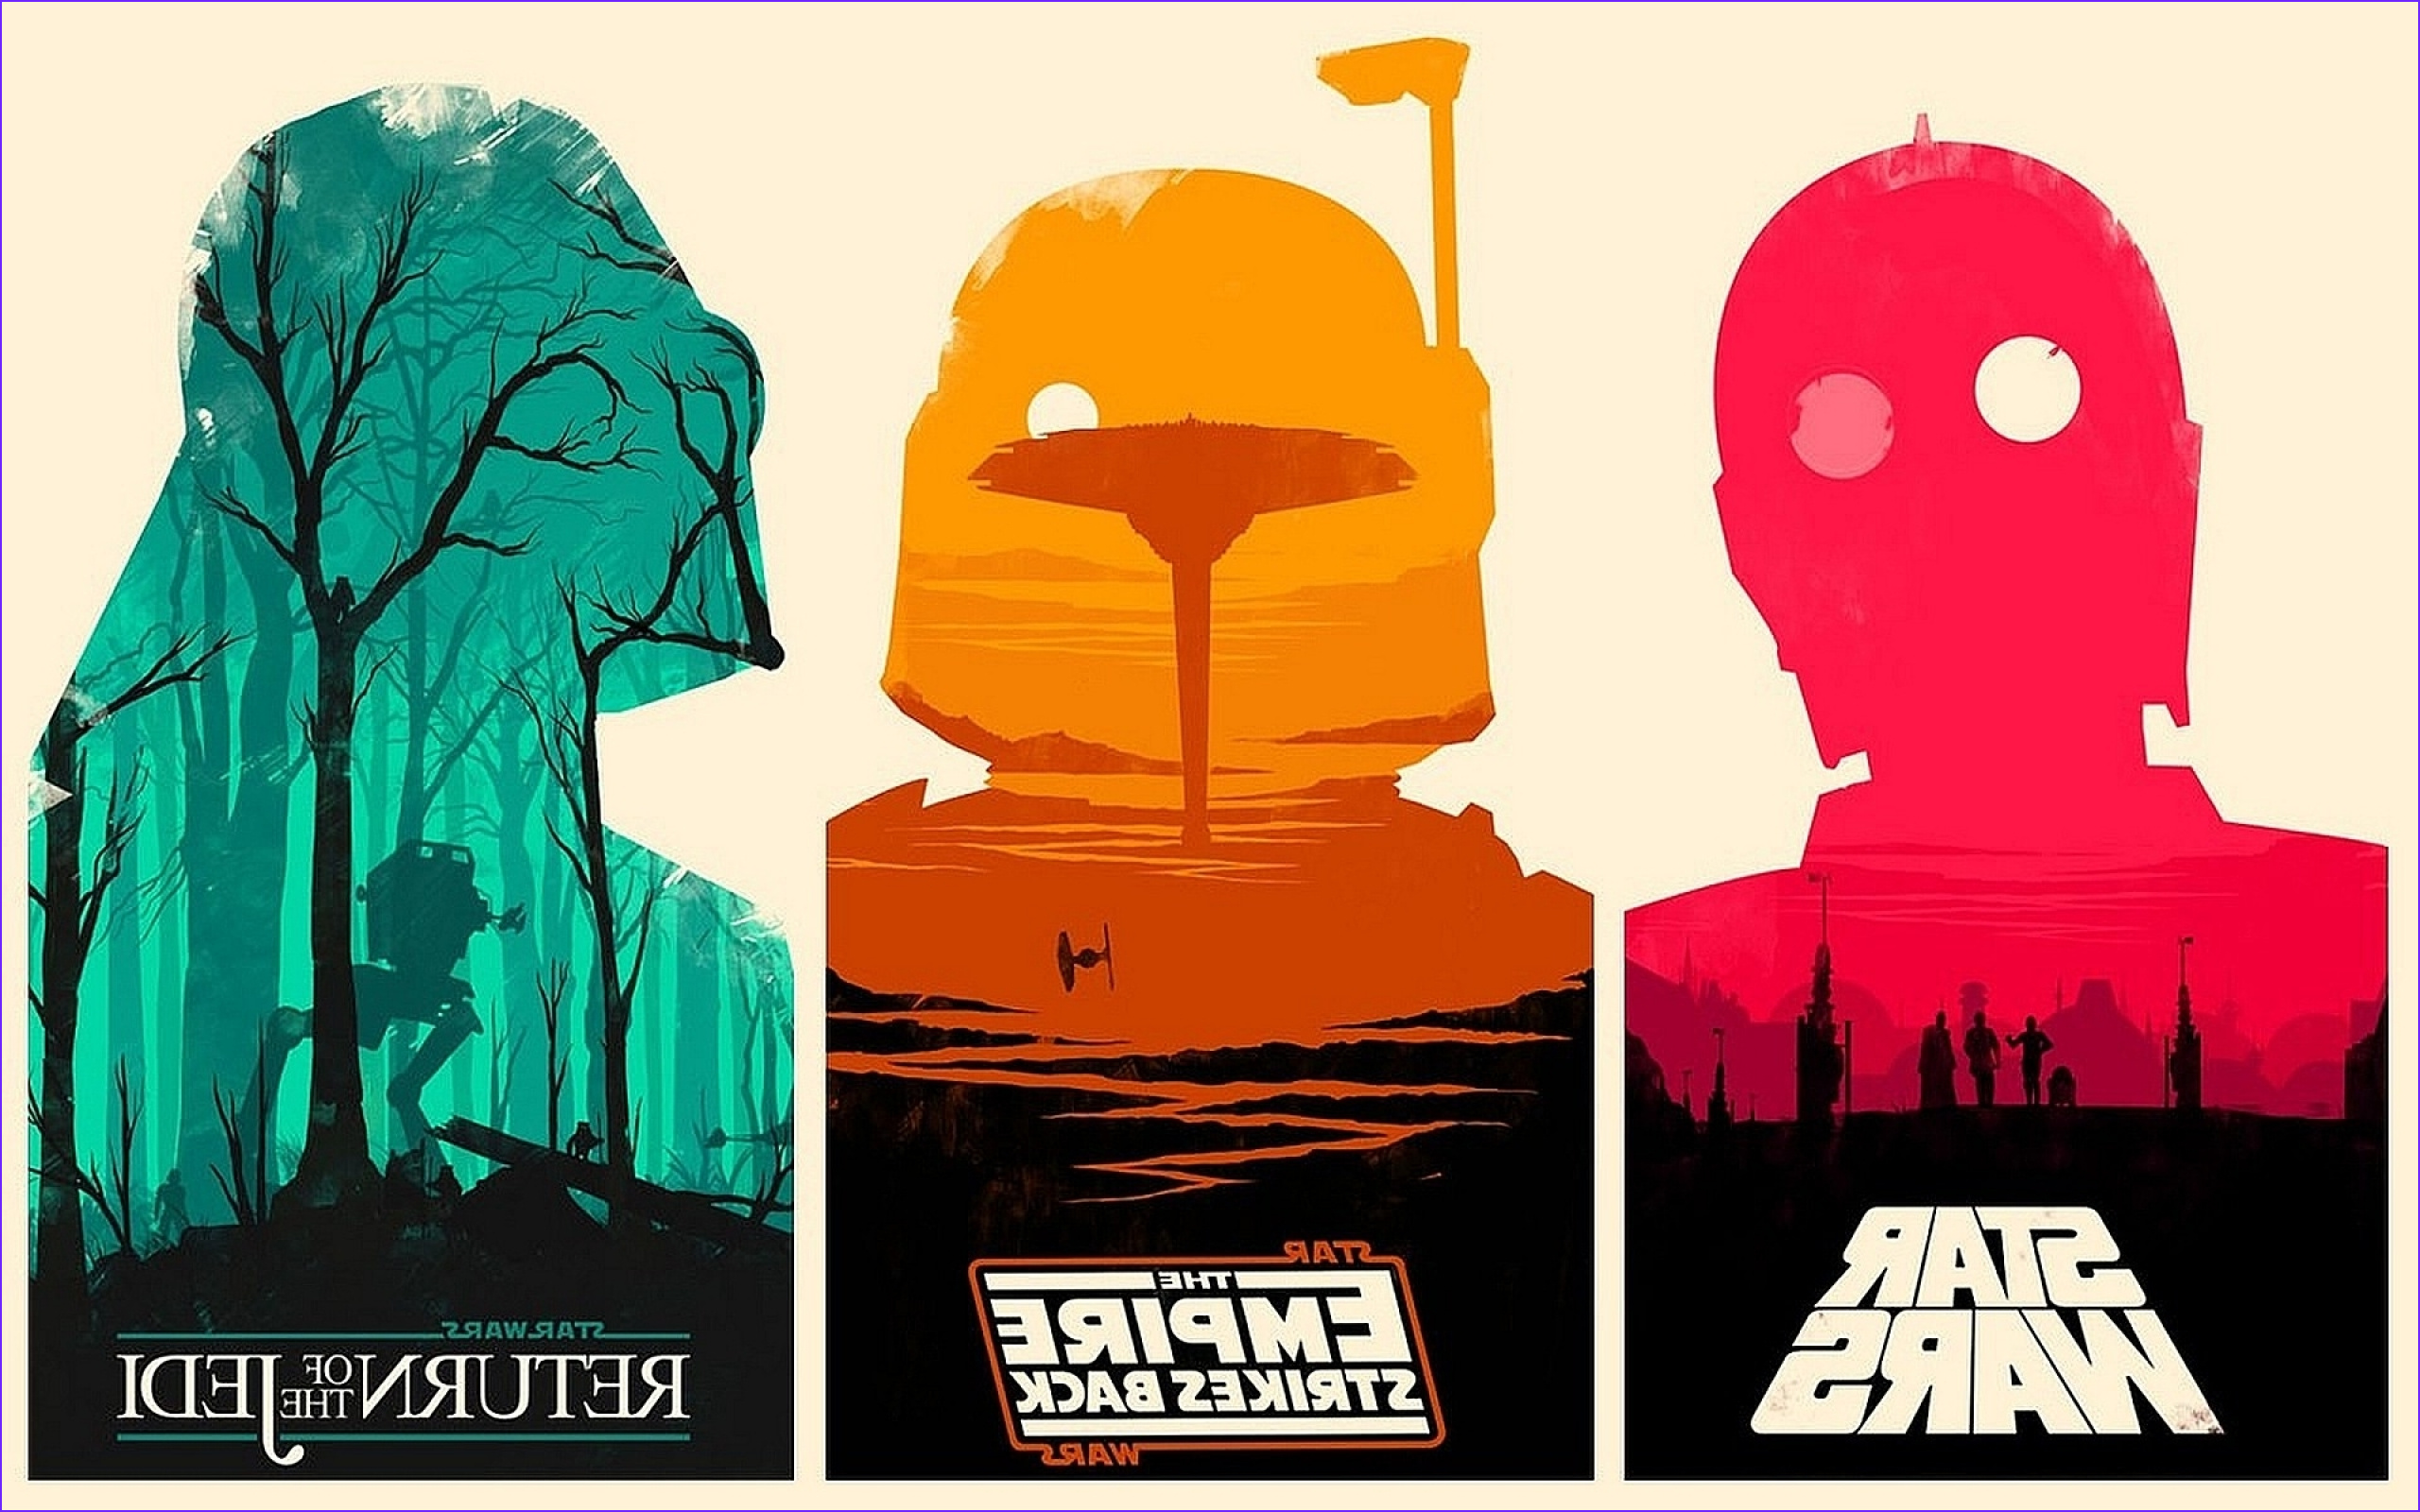 Star Wars Coloring Posters Best Of Image Maybe It's Time to Invest In the Alternative Movie Poster